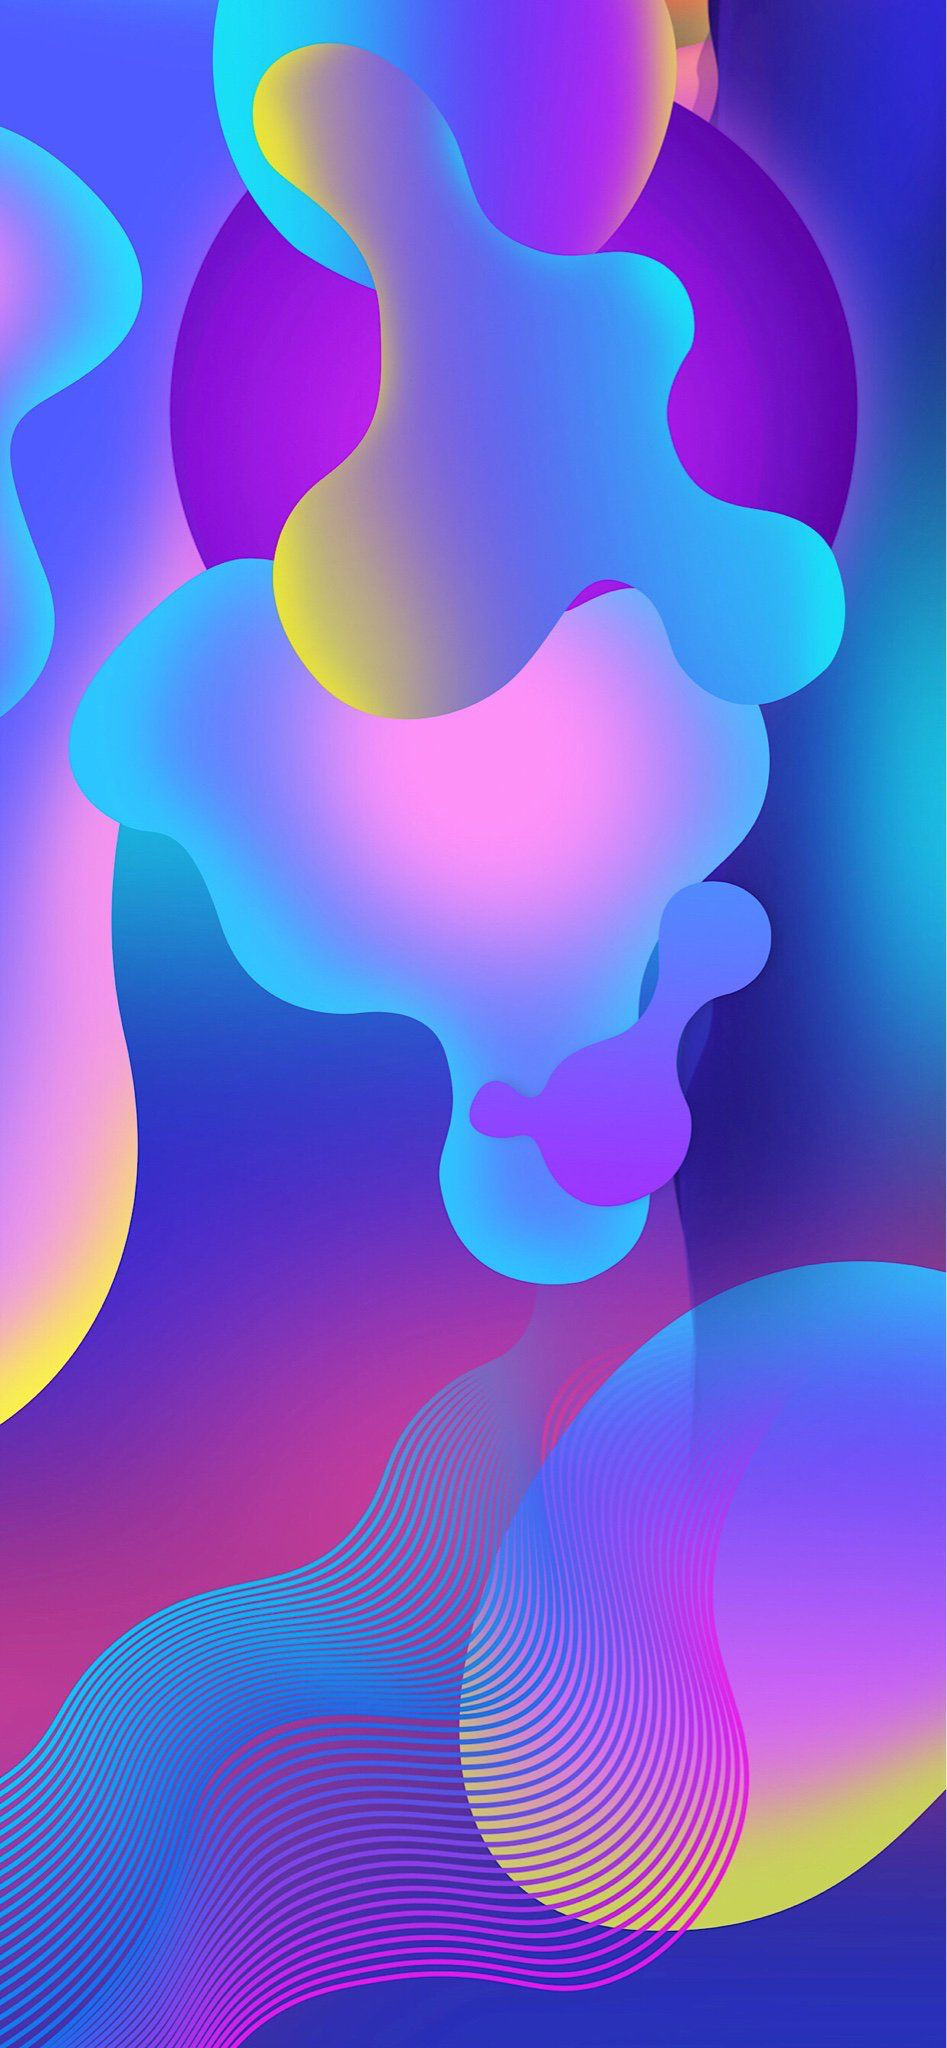 iPhone XS Max Wallpaper Iphone wallpaper, Smartphone